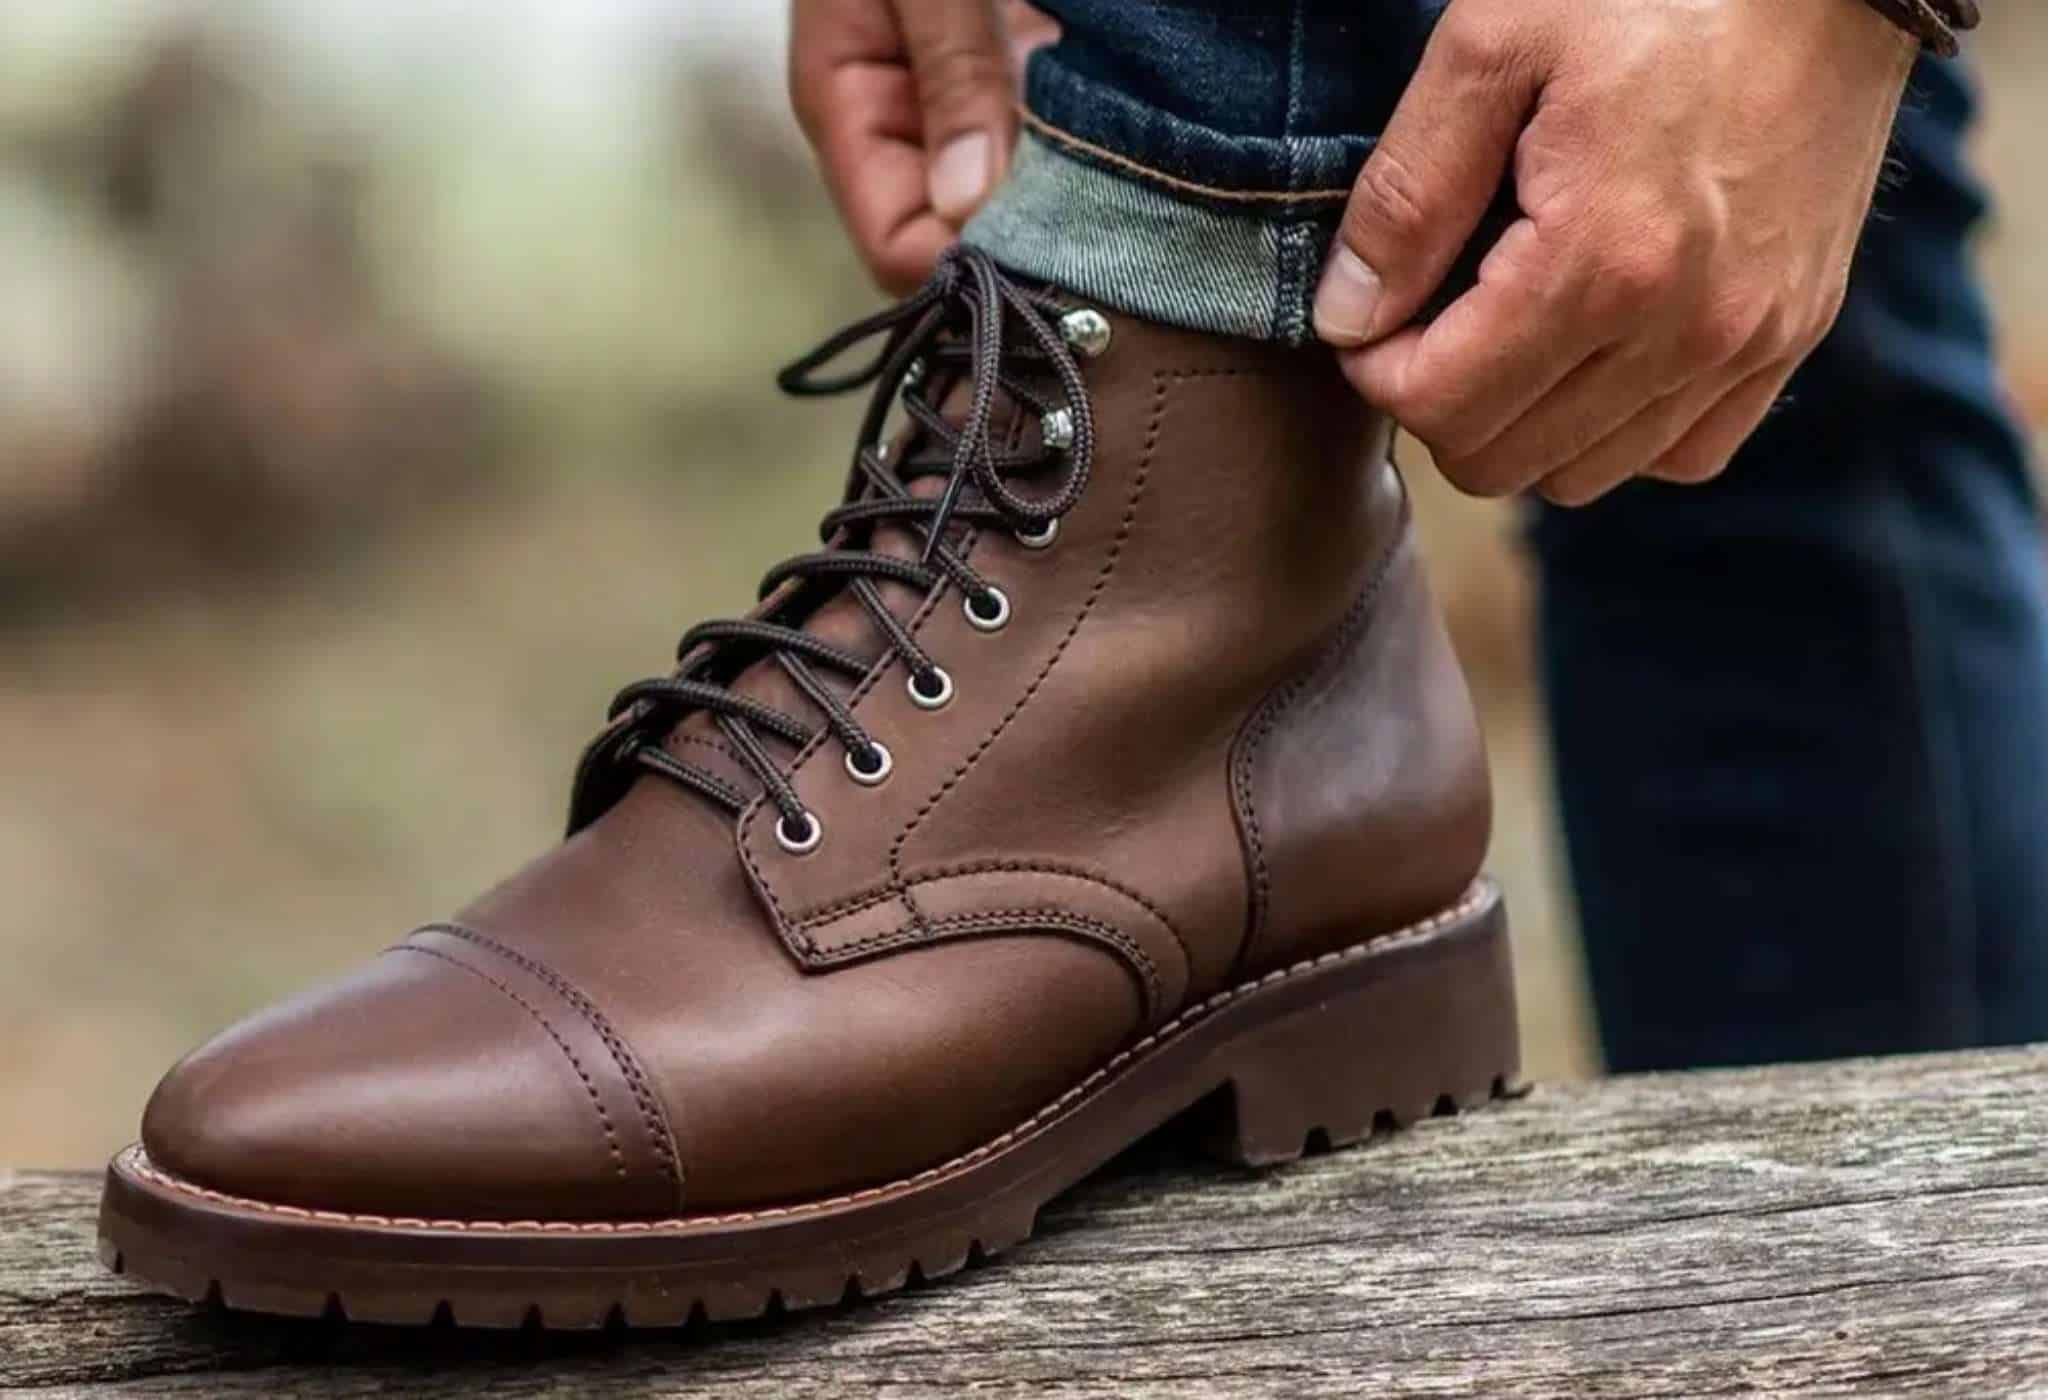 wearing clean leather boots with cuffed  jeans